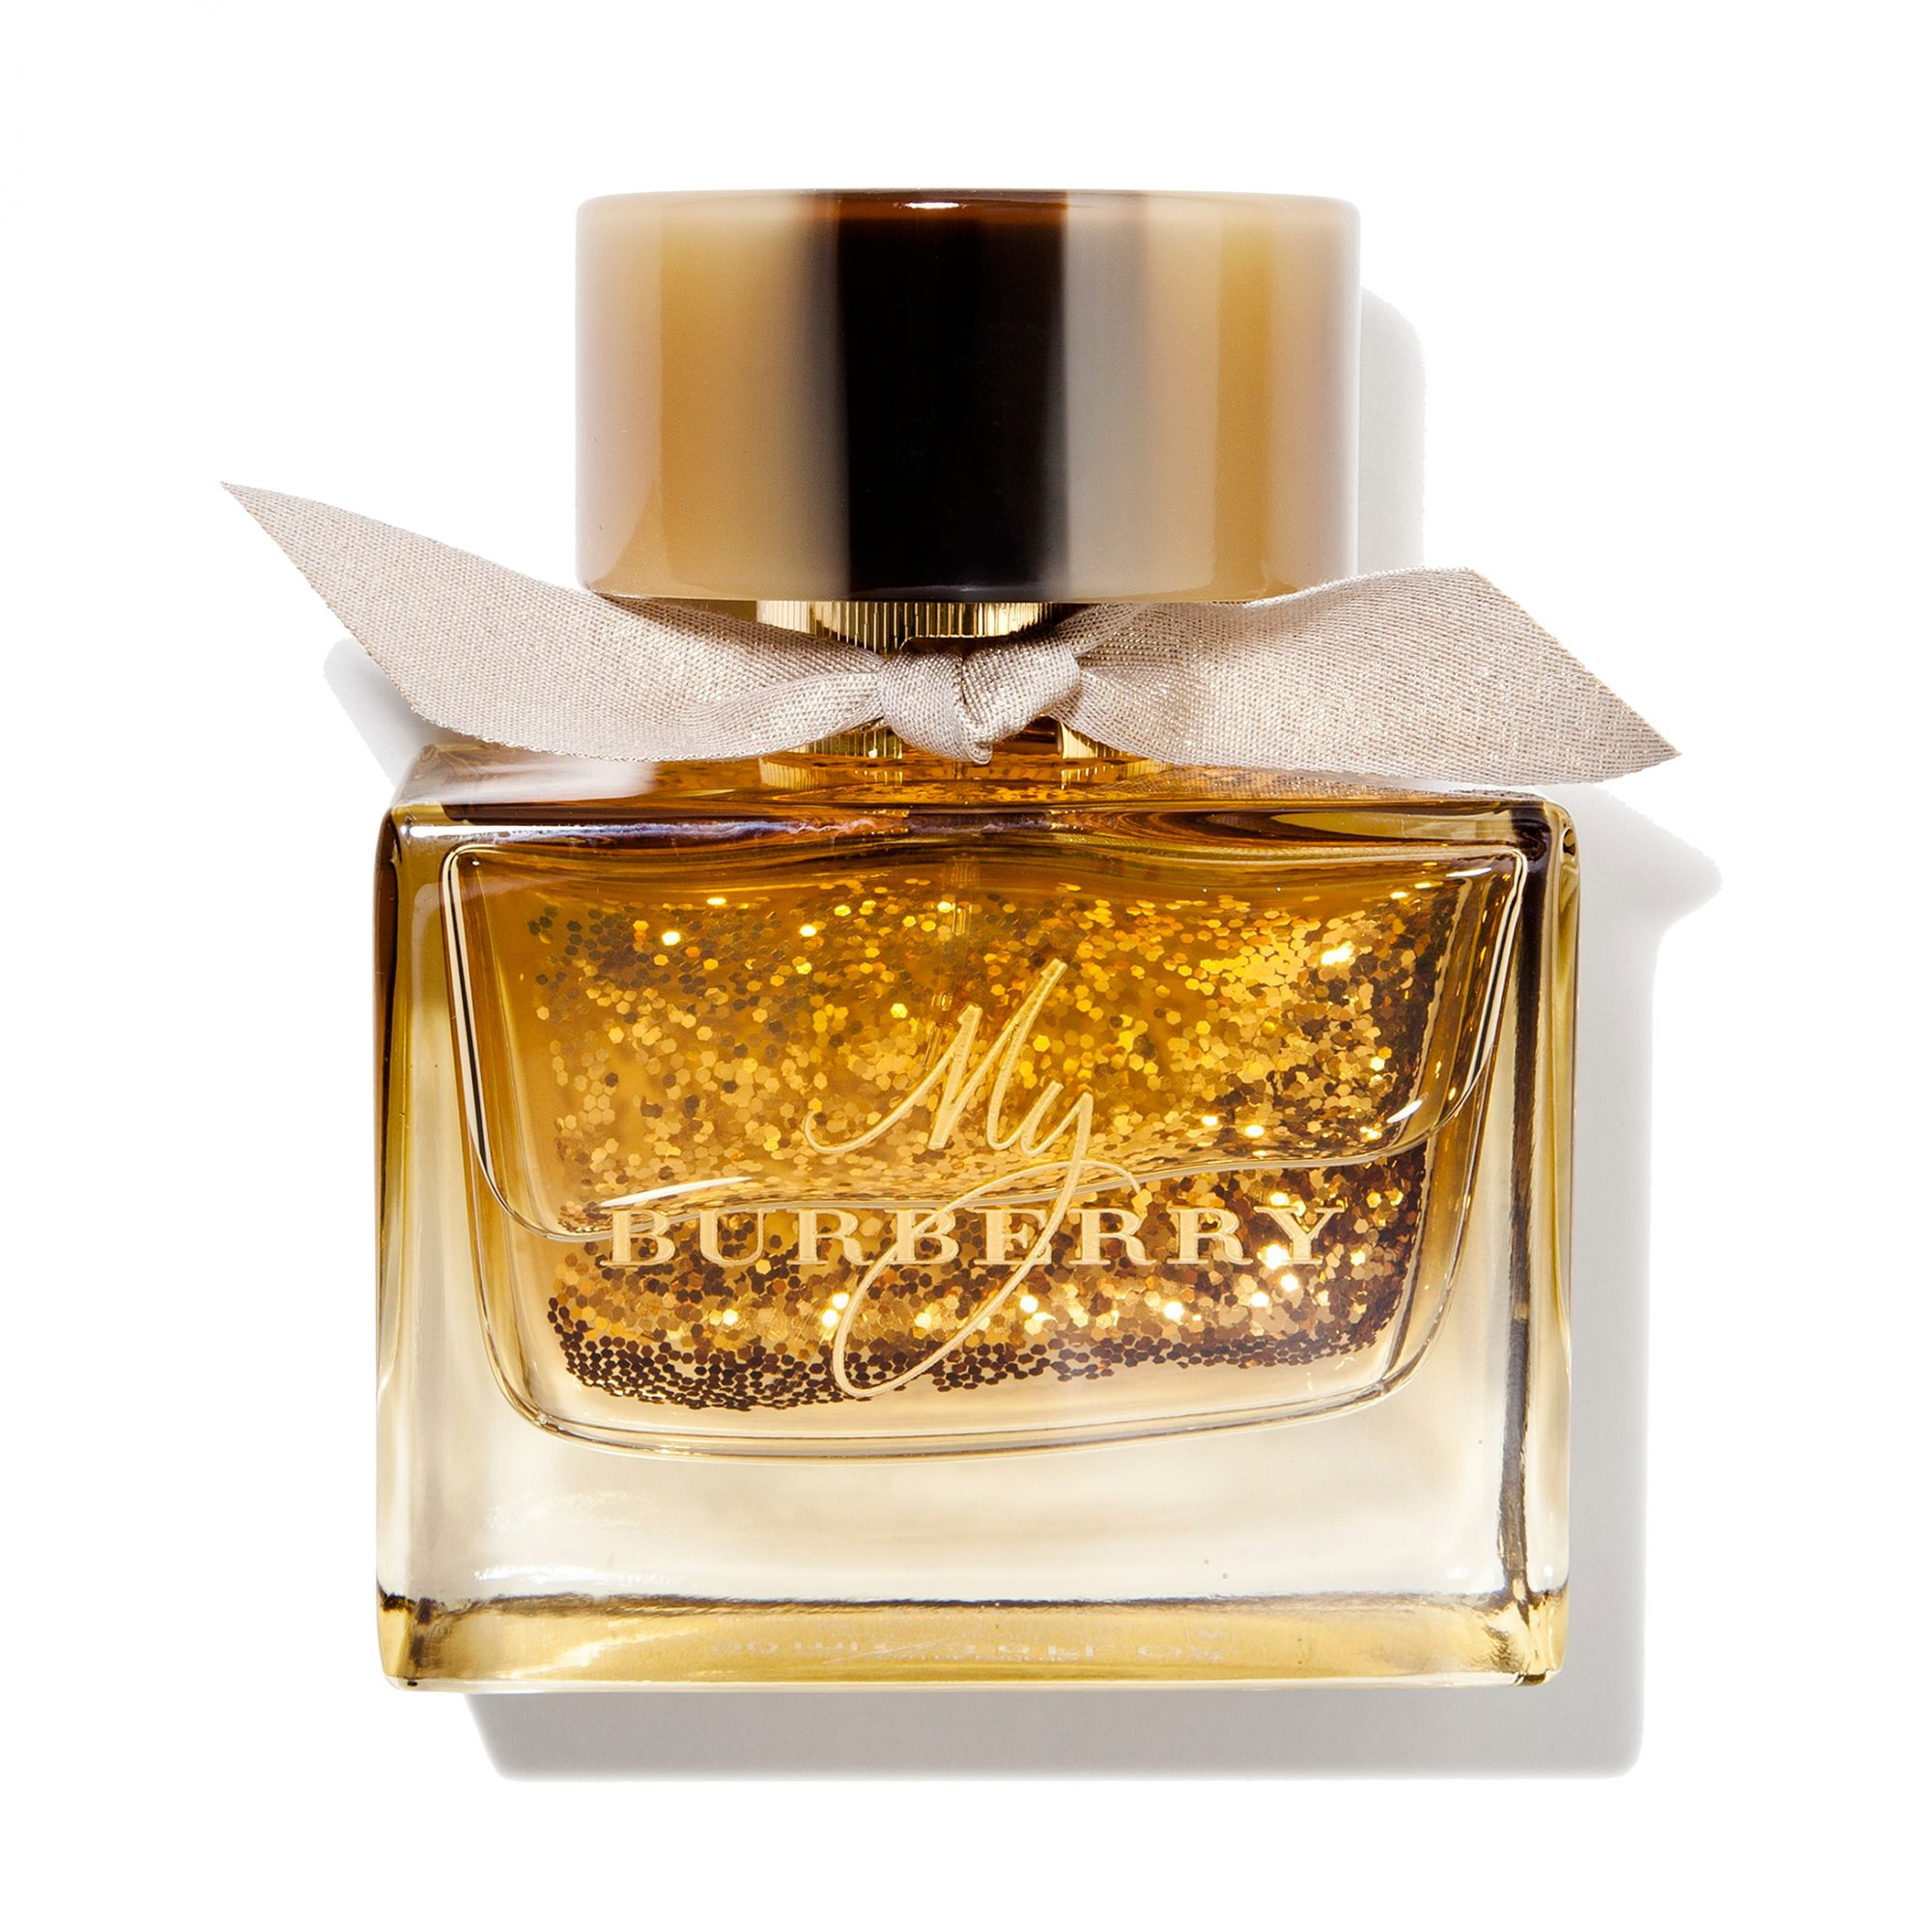 <p>LIMITED EDITION MY BURBERRY PERFUME</p>